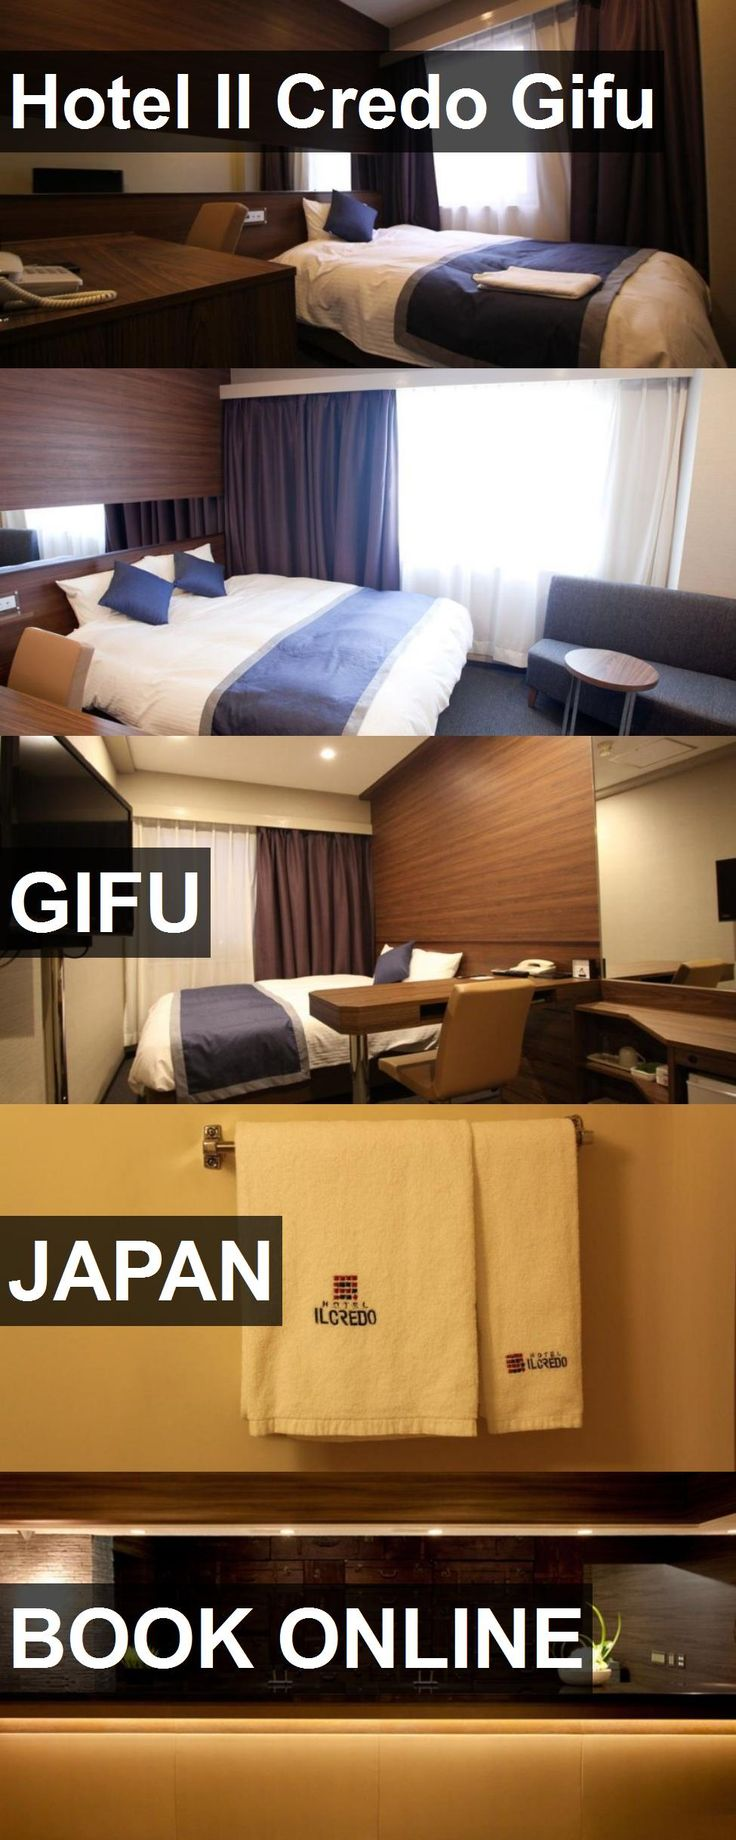 Hotel Hotel Il Credo Gifu in Gifu, Japan. For more information, photos, reviews and best prices please follow the link. #Japan #Gifu #HotelIlCredoGifu #hotel #travel #vacation